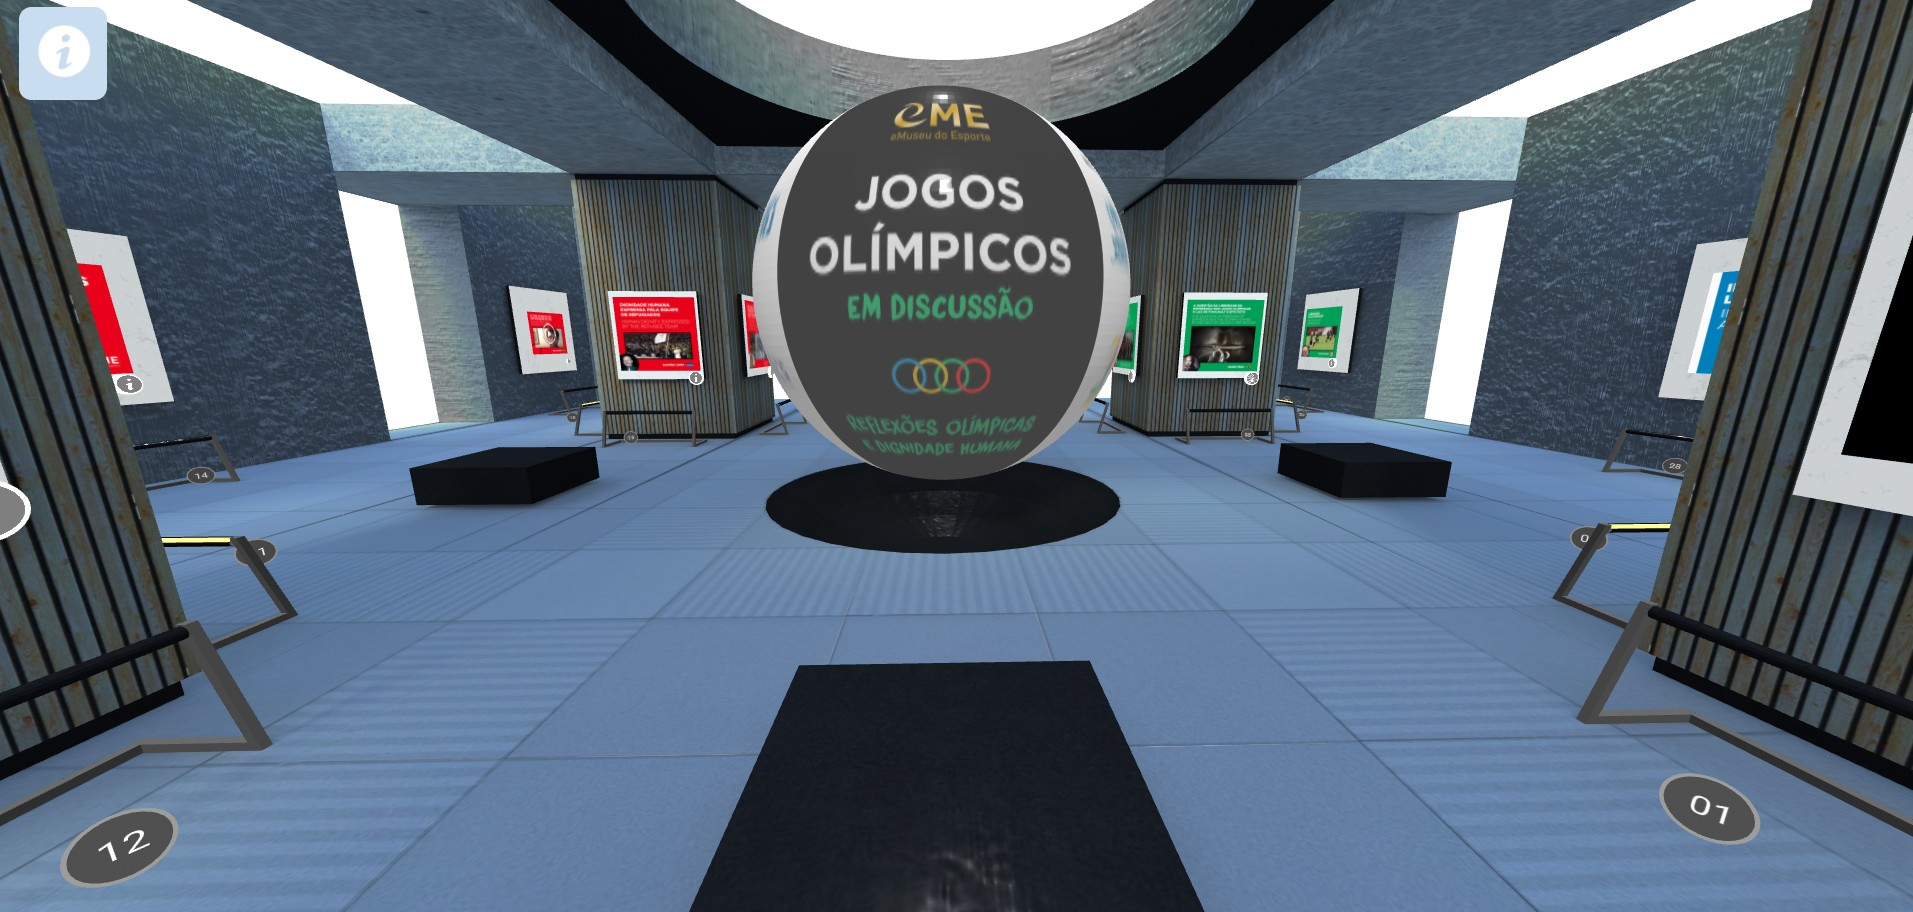 The virtual exhibition stimulates discussion of social agendas at the Olympics (Image: Reproduction/eMuseu do Esporte)